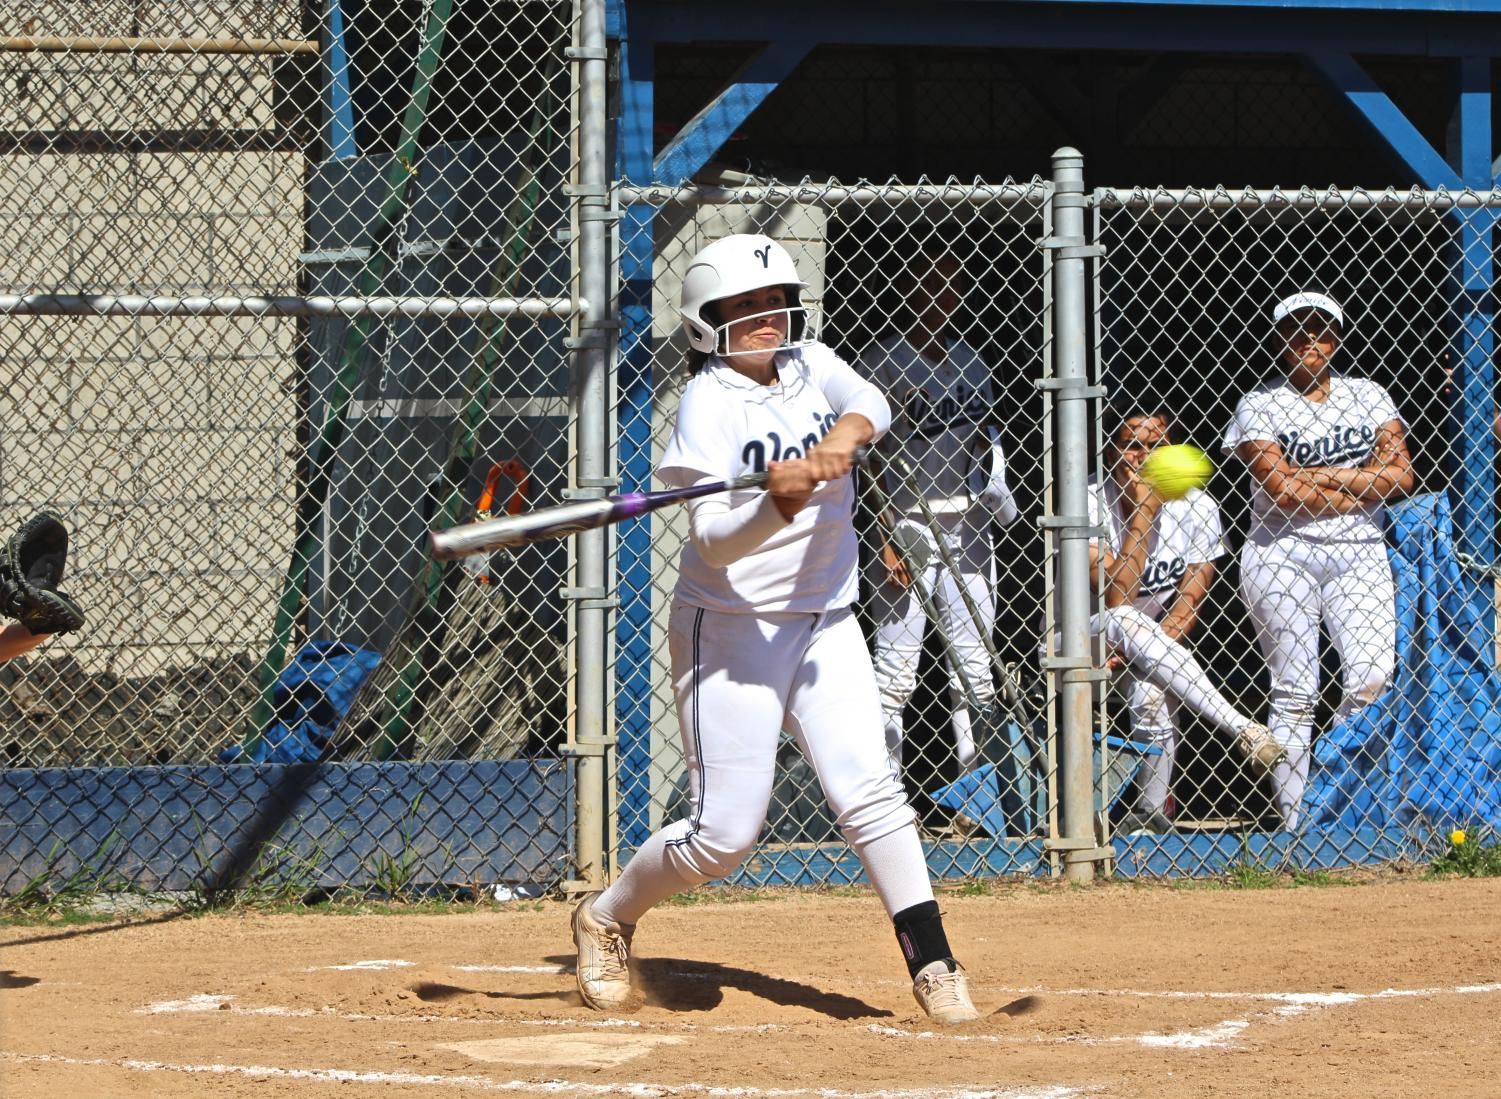 Savanna Aguayo, number 15, swinging bat